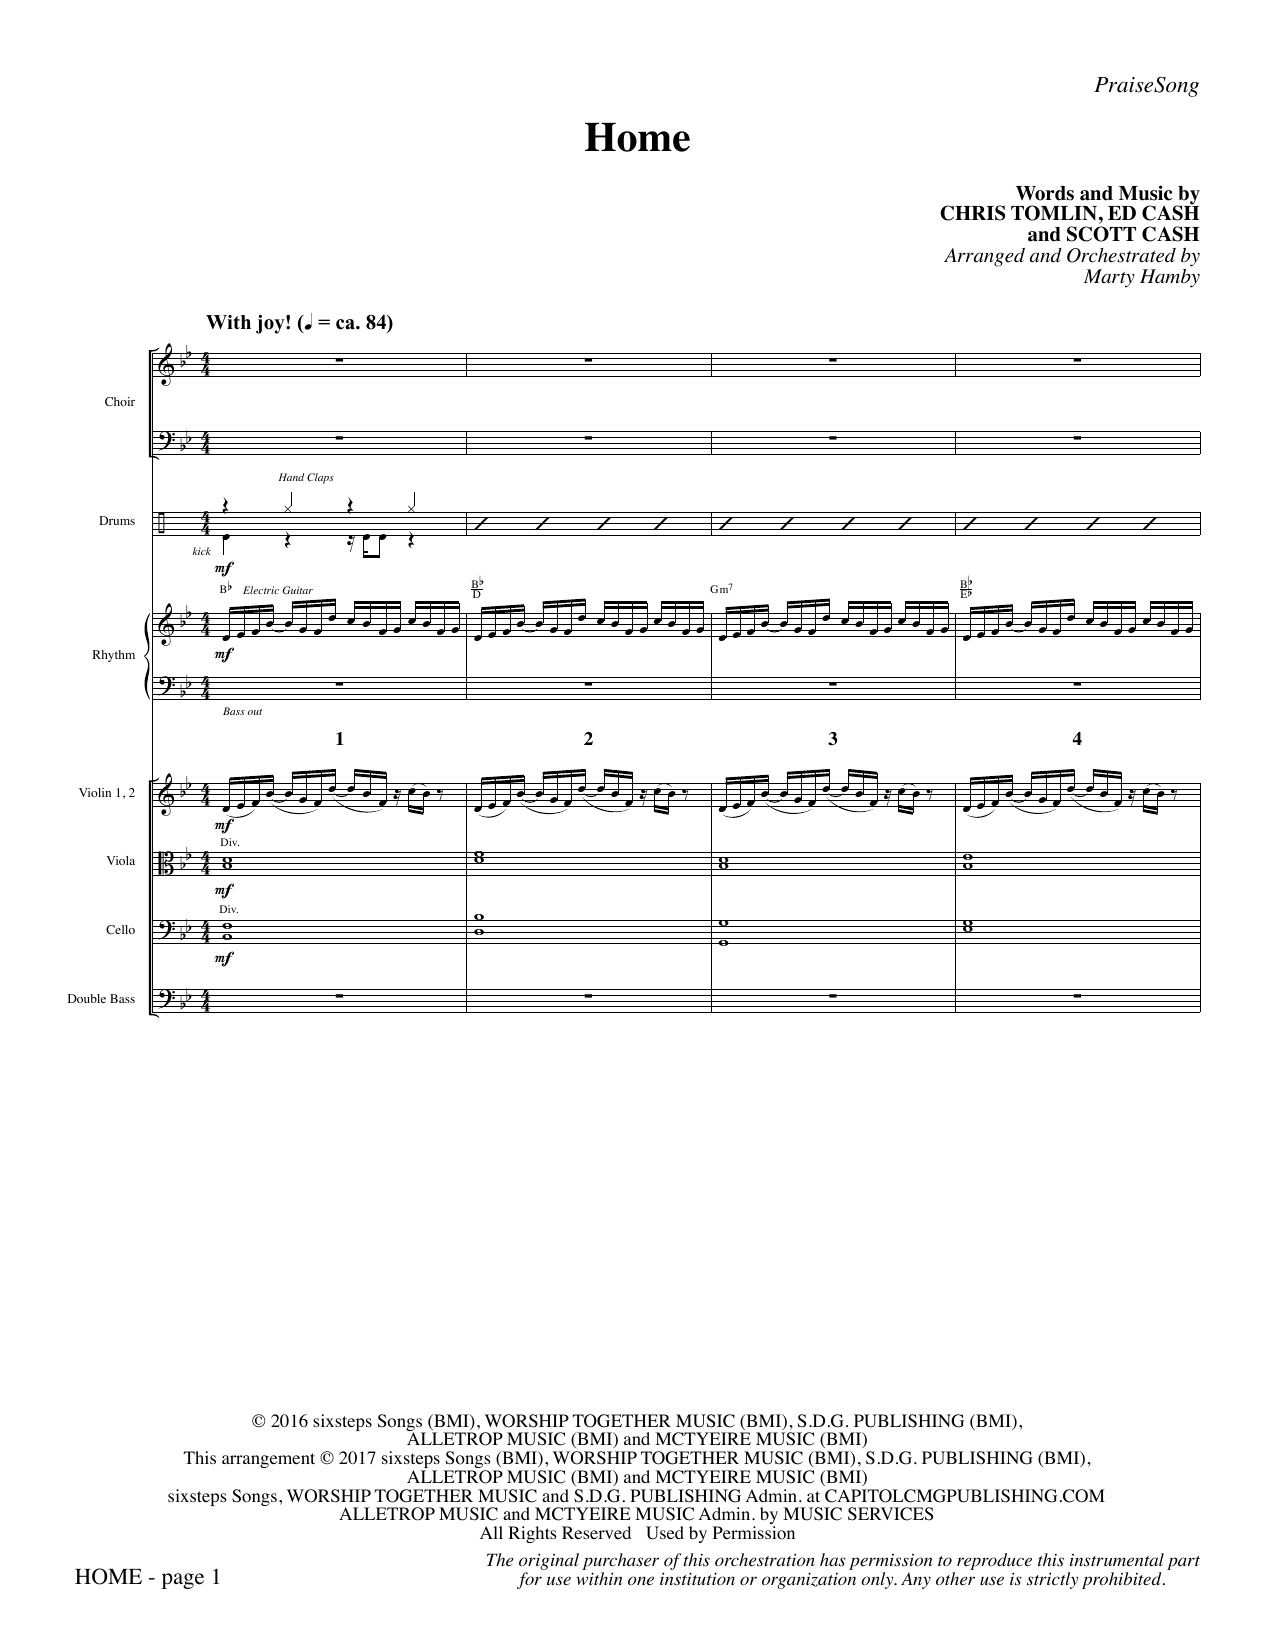 Home (COMPLETE) sheet music for orchestra/band by Marty Hamby, Chris Tomlin, Ed Cash and Scott Cash. Score Image Preview.